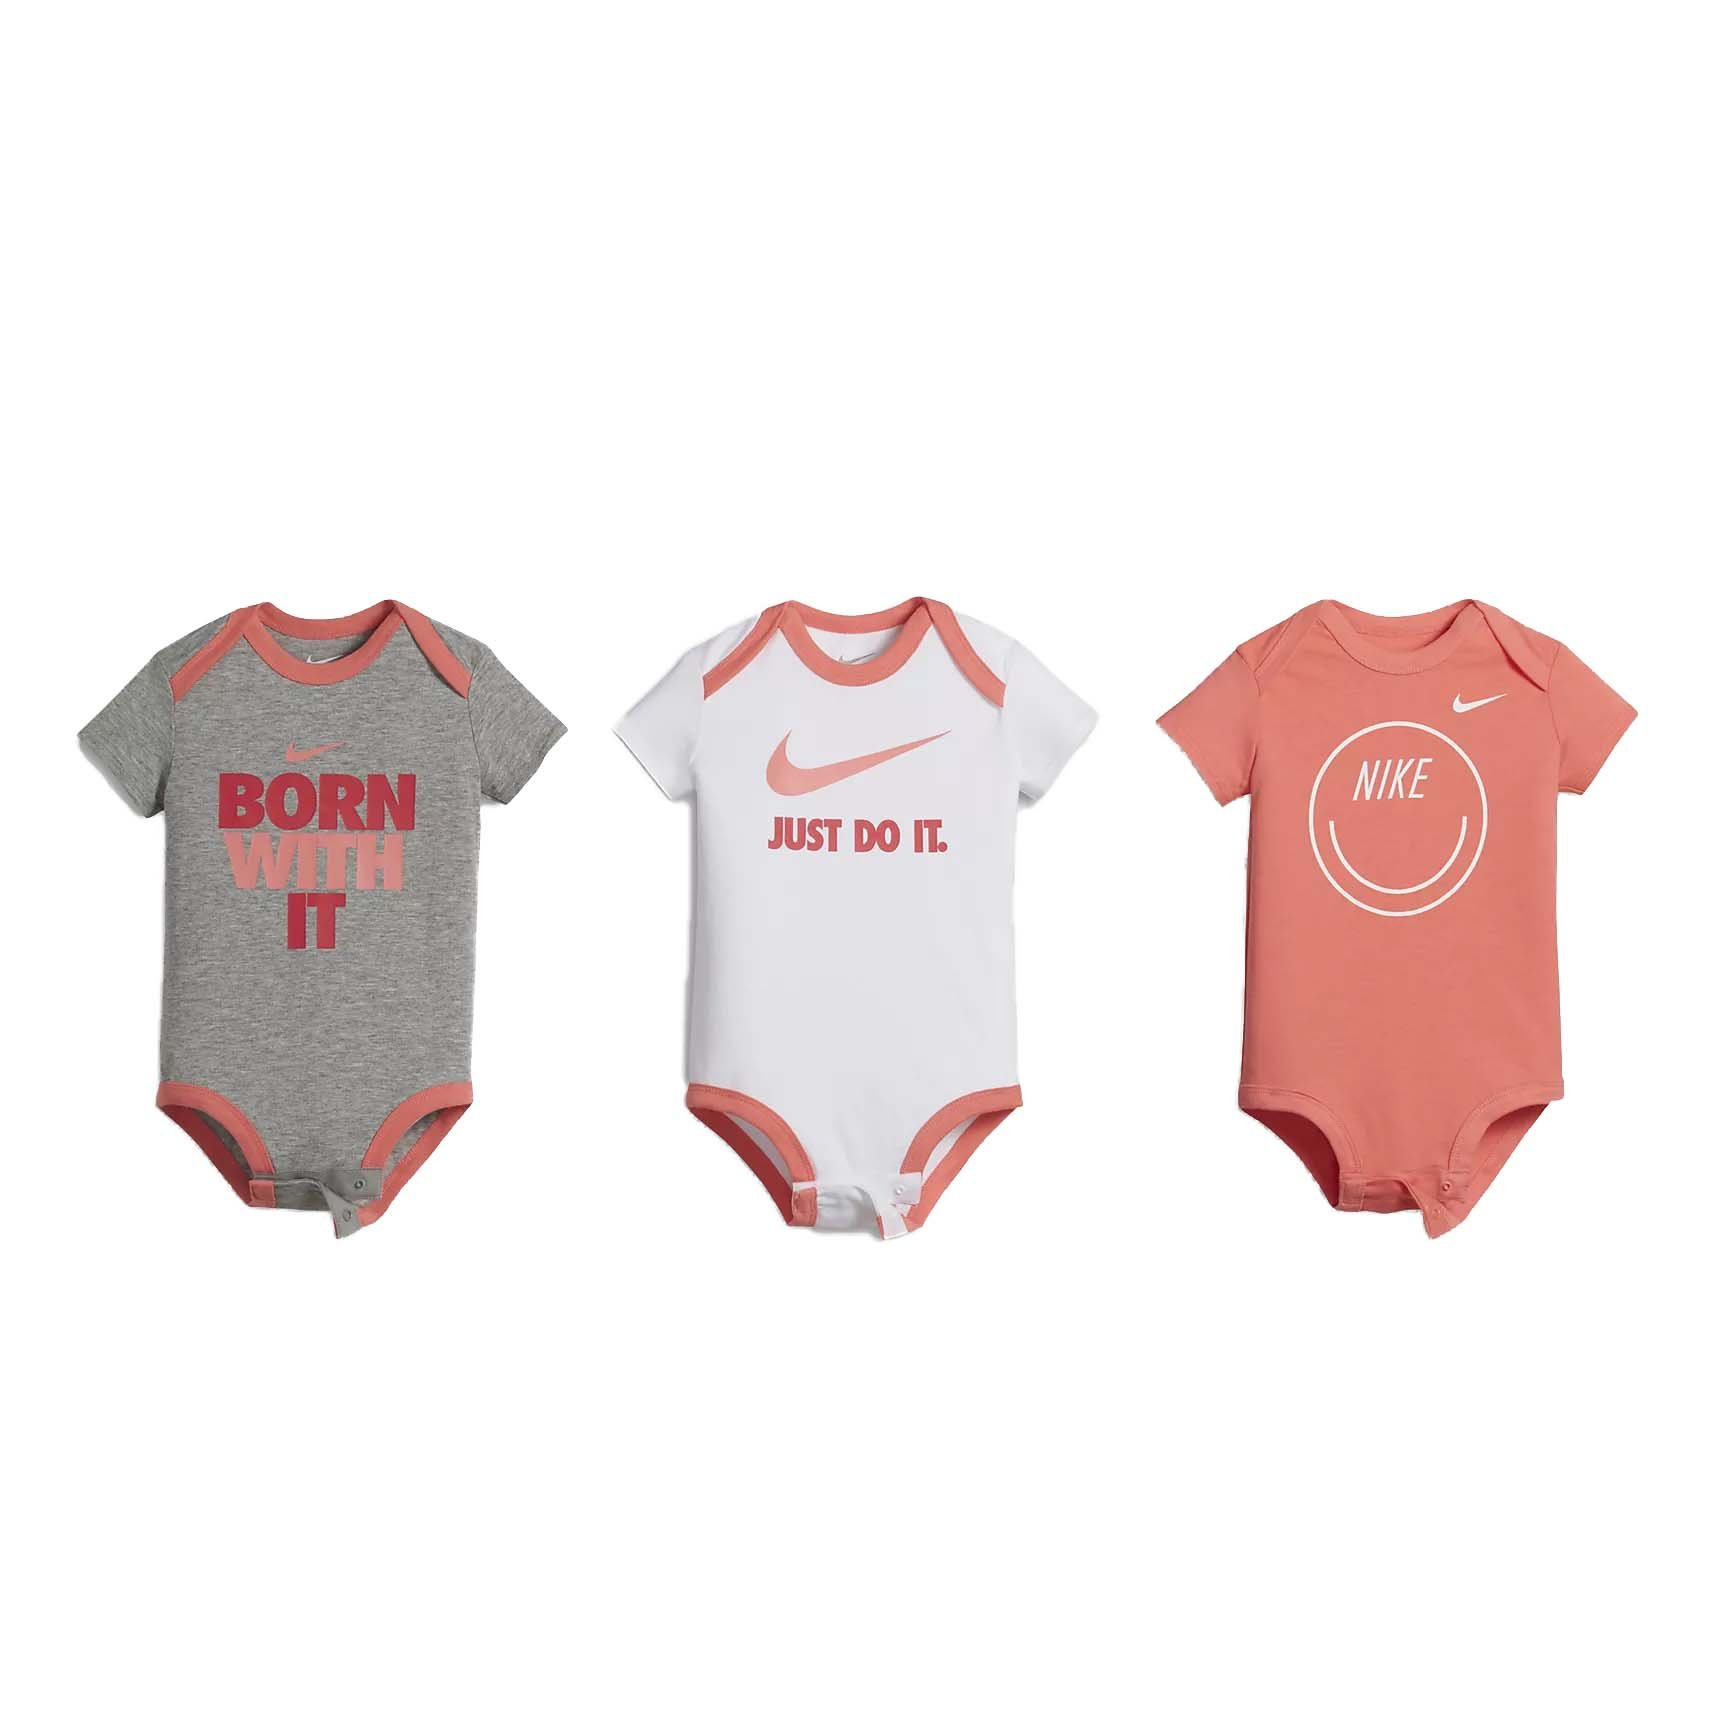 be2d6908ab Galleon - Nike Swoosh Three-Piece Infant Baby Bodysuit Set (3-6 Months,  Coral/Multi)